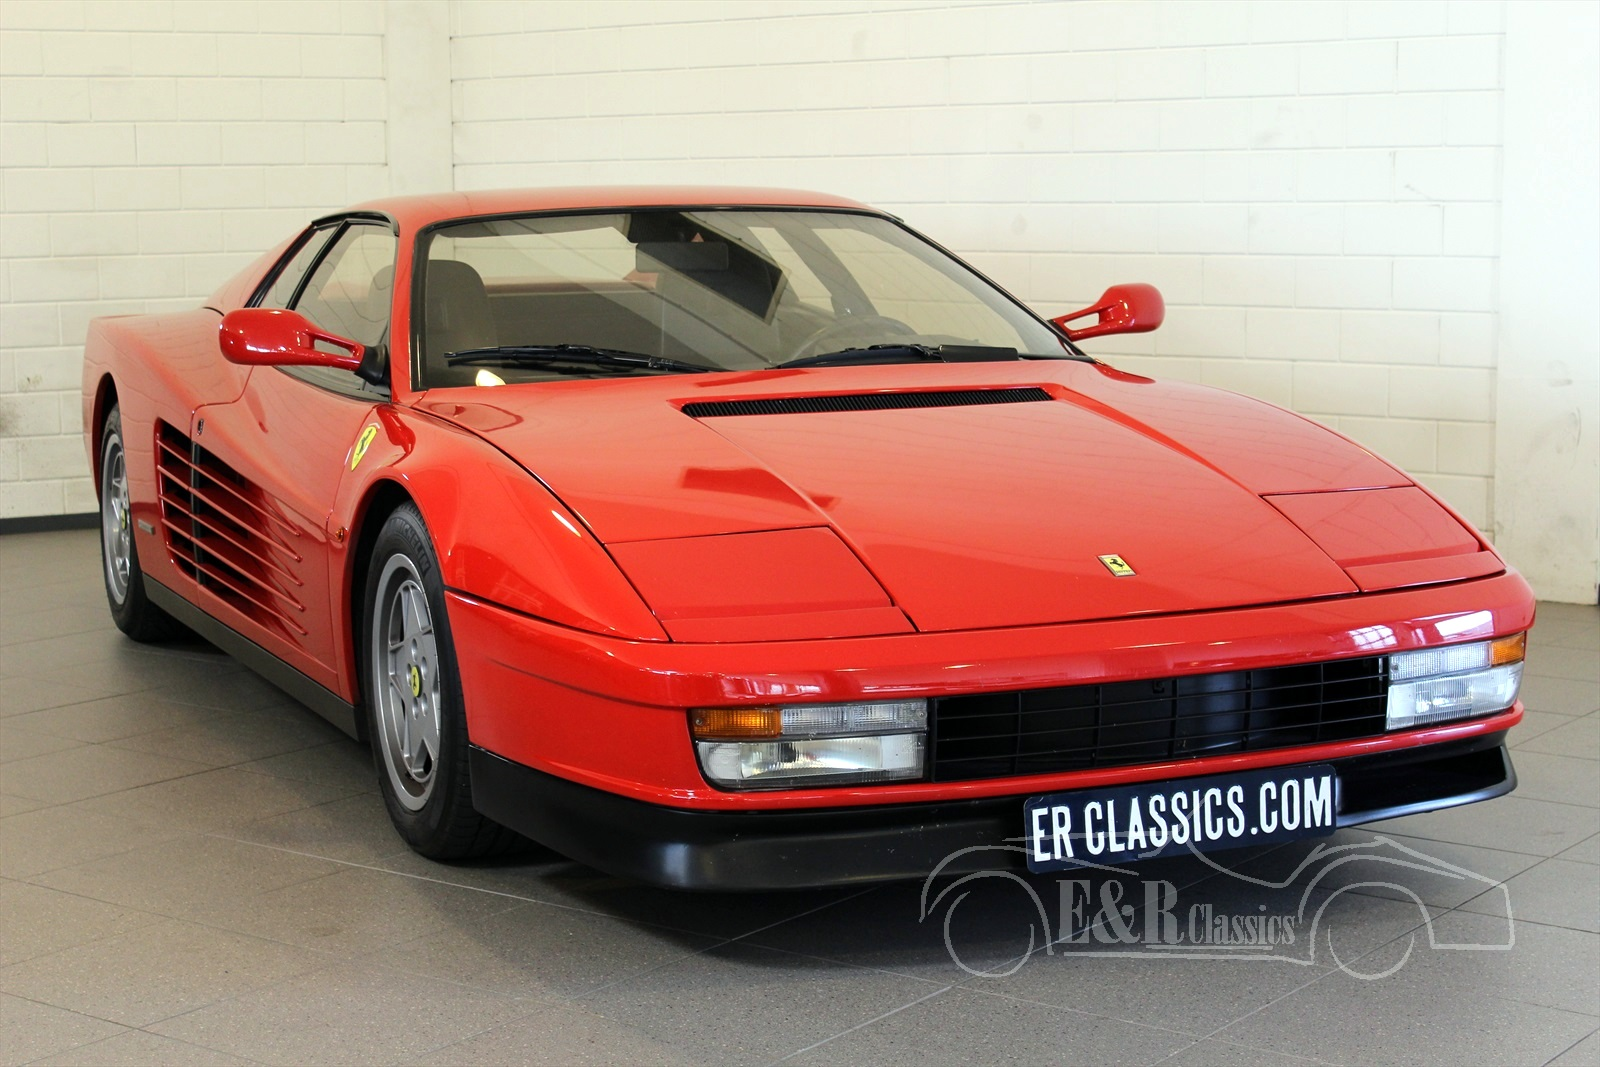 ferrari testarossa voitures de collection a vendre a e r classic cars. Black Bedroom Furniture Sets. Home Design Ideas